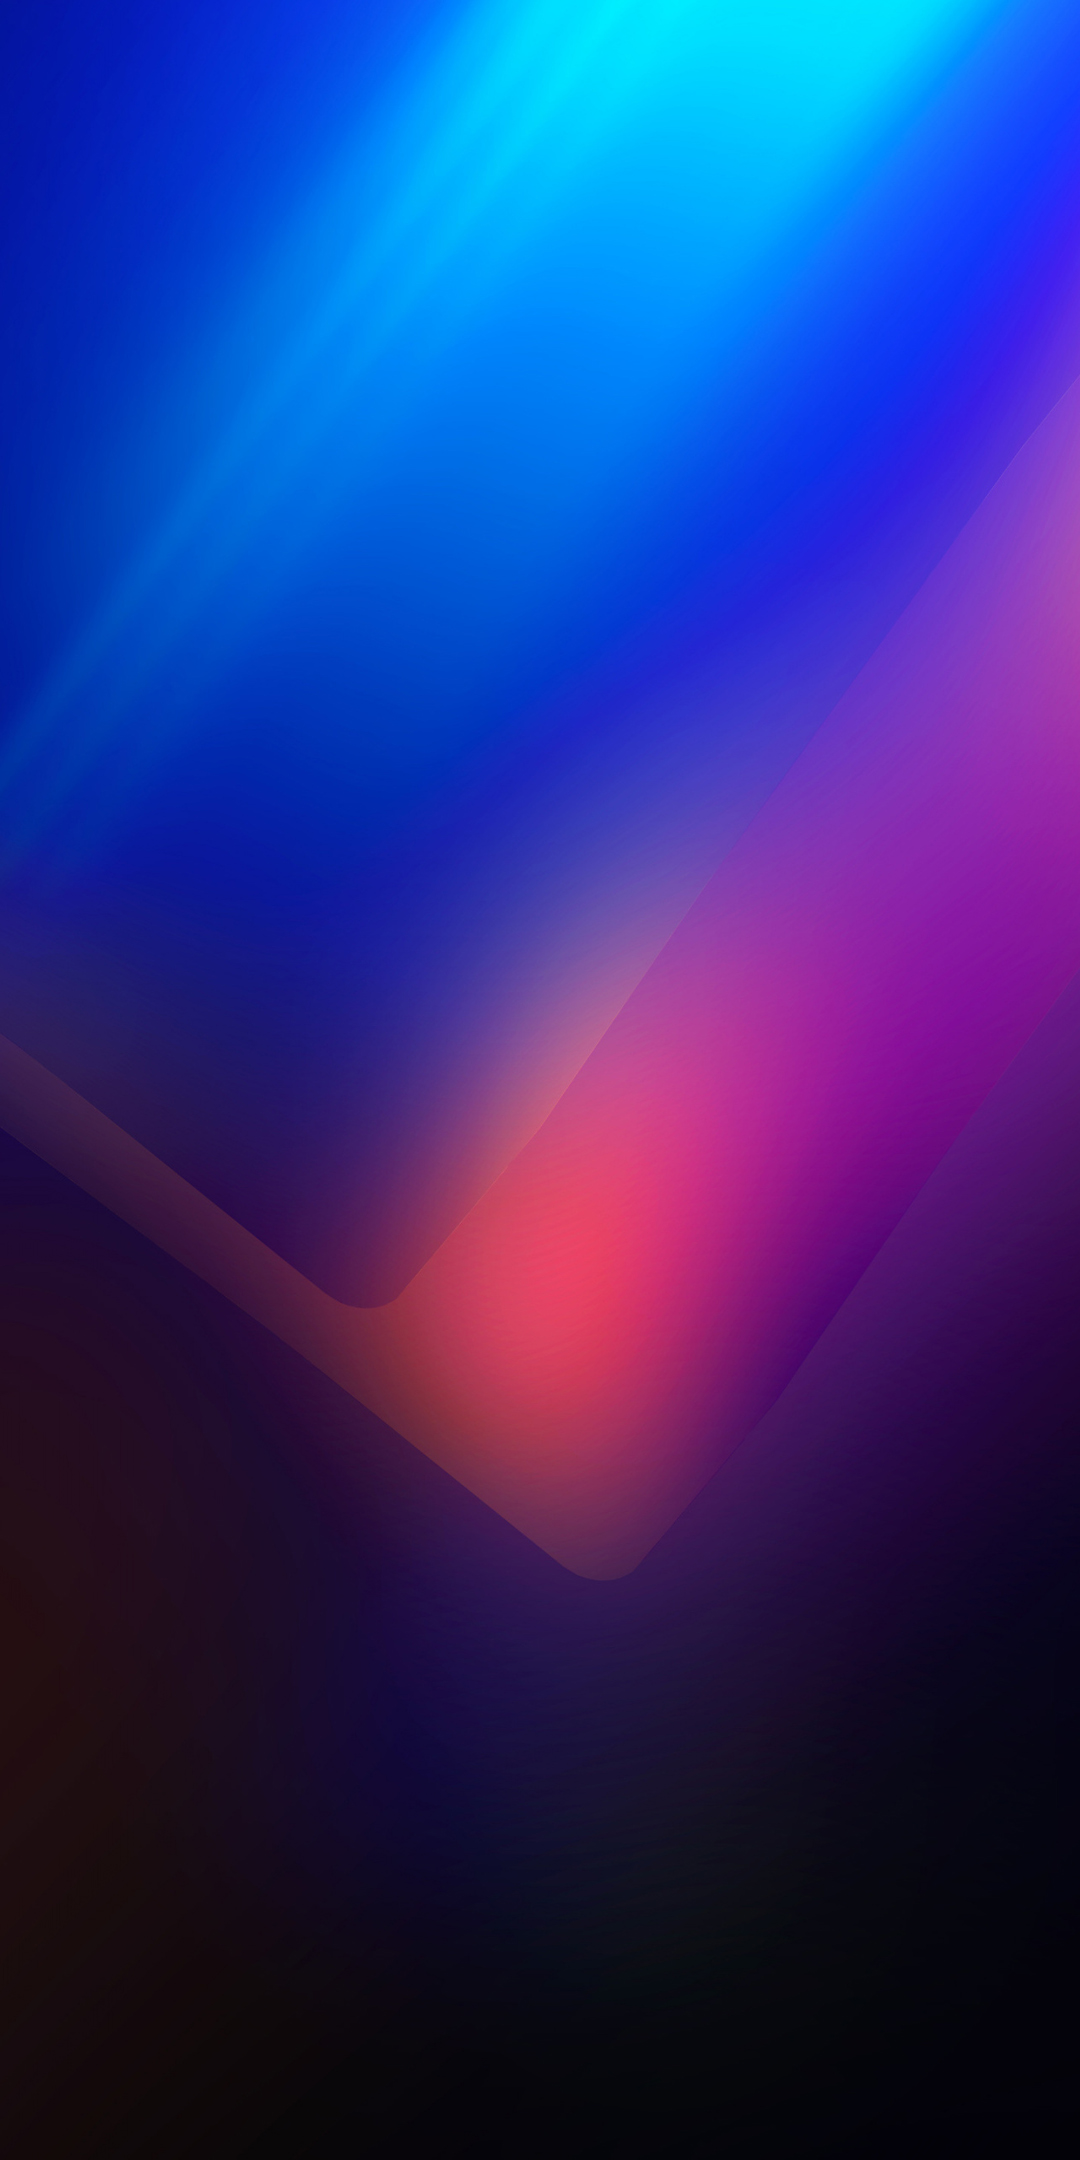 1080x2160 Download Redmi 6 Pro Wallpapers - 18 Stock Android Wallpapers